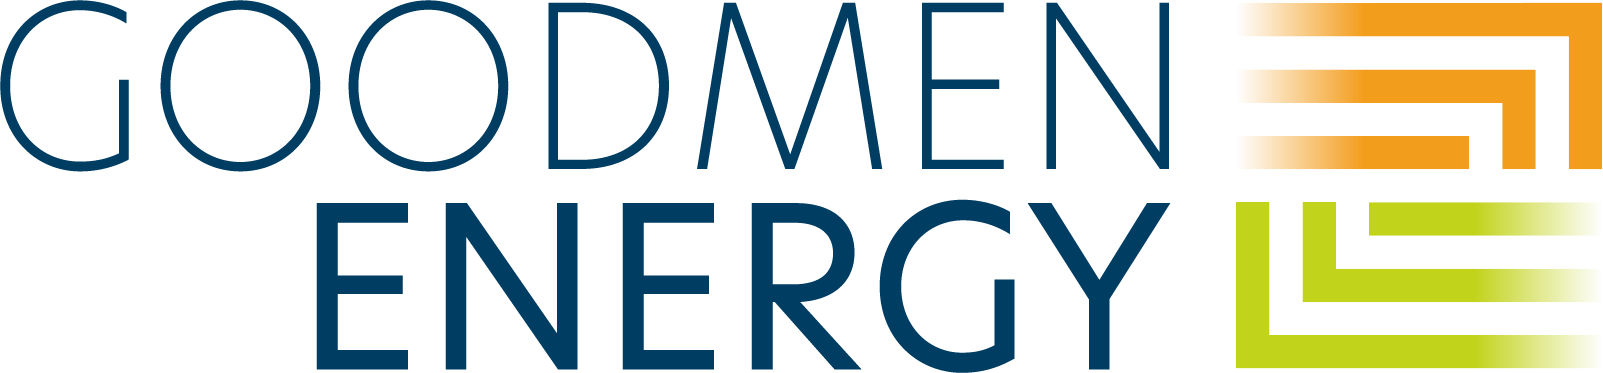 GoodmenENERGY logo